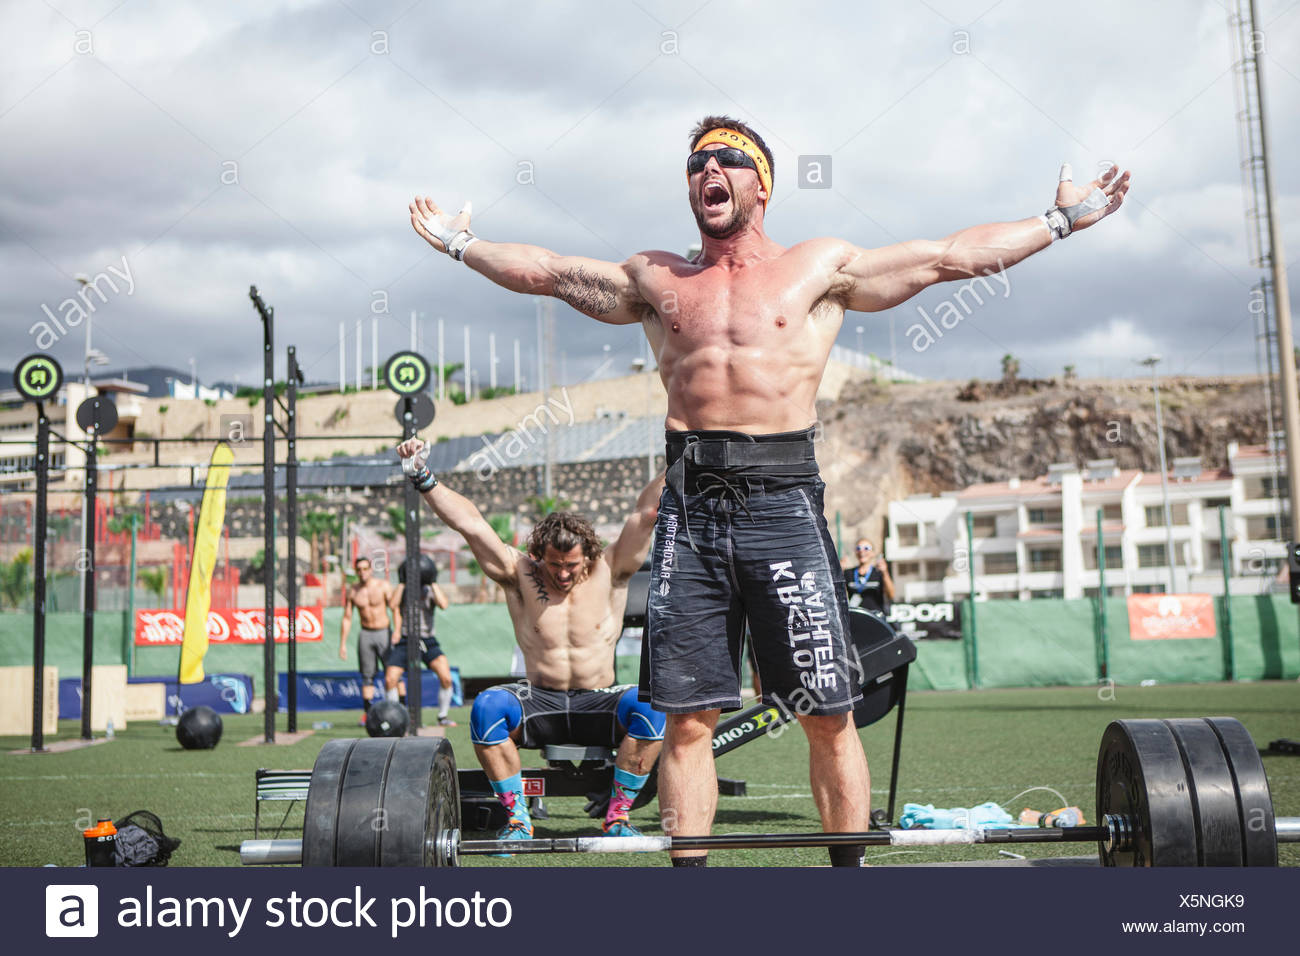 Shirtless muscular weightlifting team athletes shouting with joy after winning competition,Tenerife,Canary Islands,Spain - Stock Image